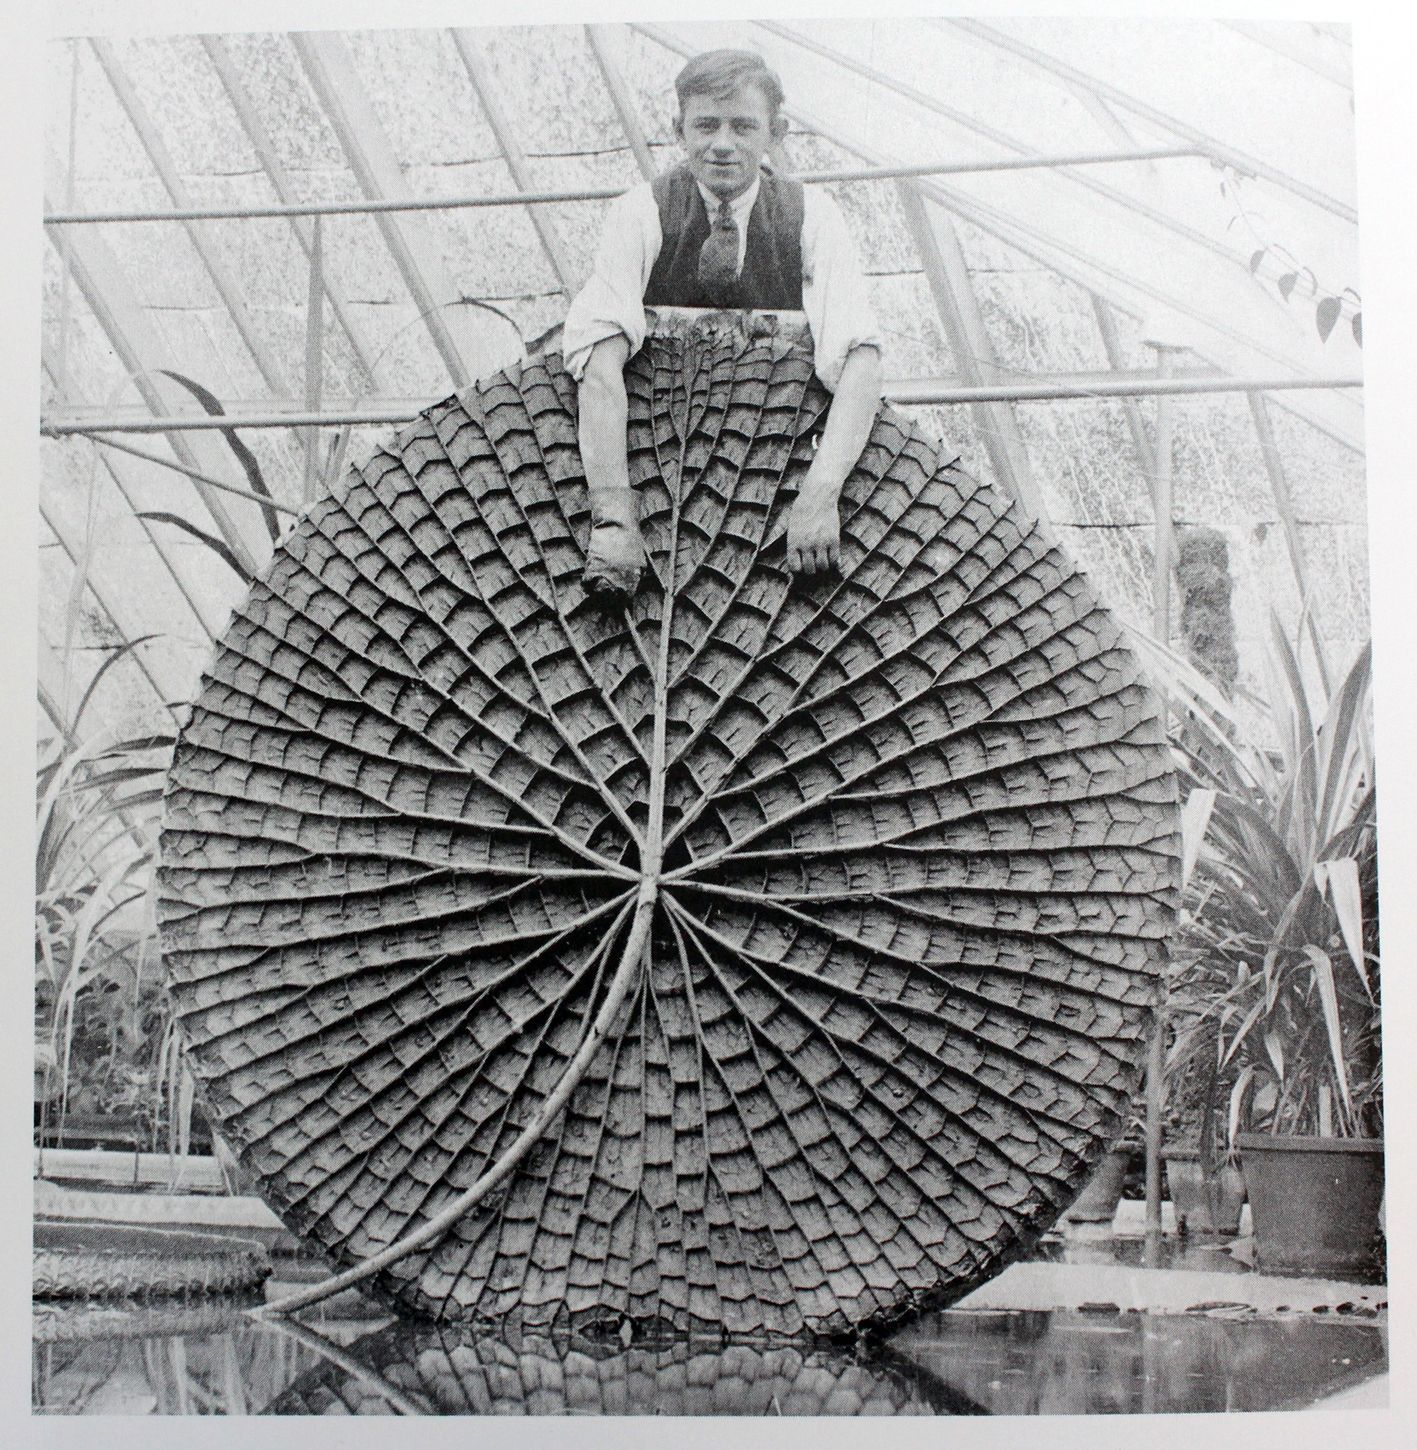 Joseph Paxton photographed with a fine specimen of the Victoria amazonica leaf inside a greenhouse at Chatsworth House